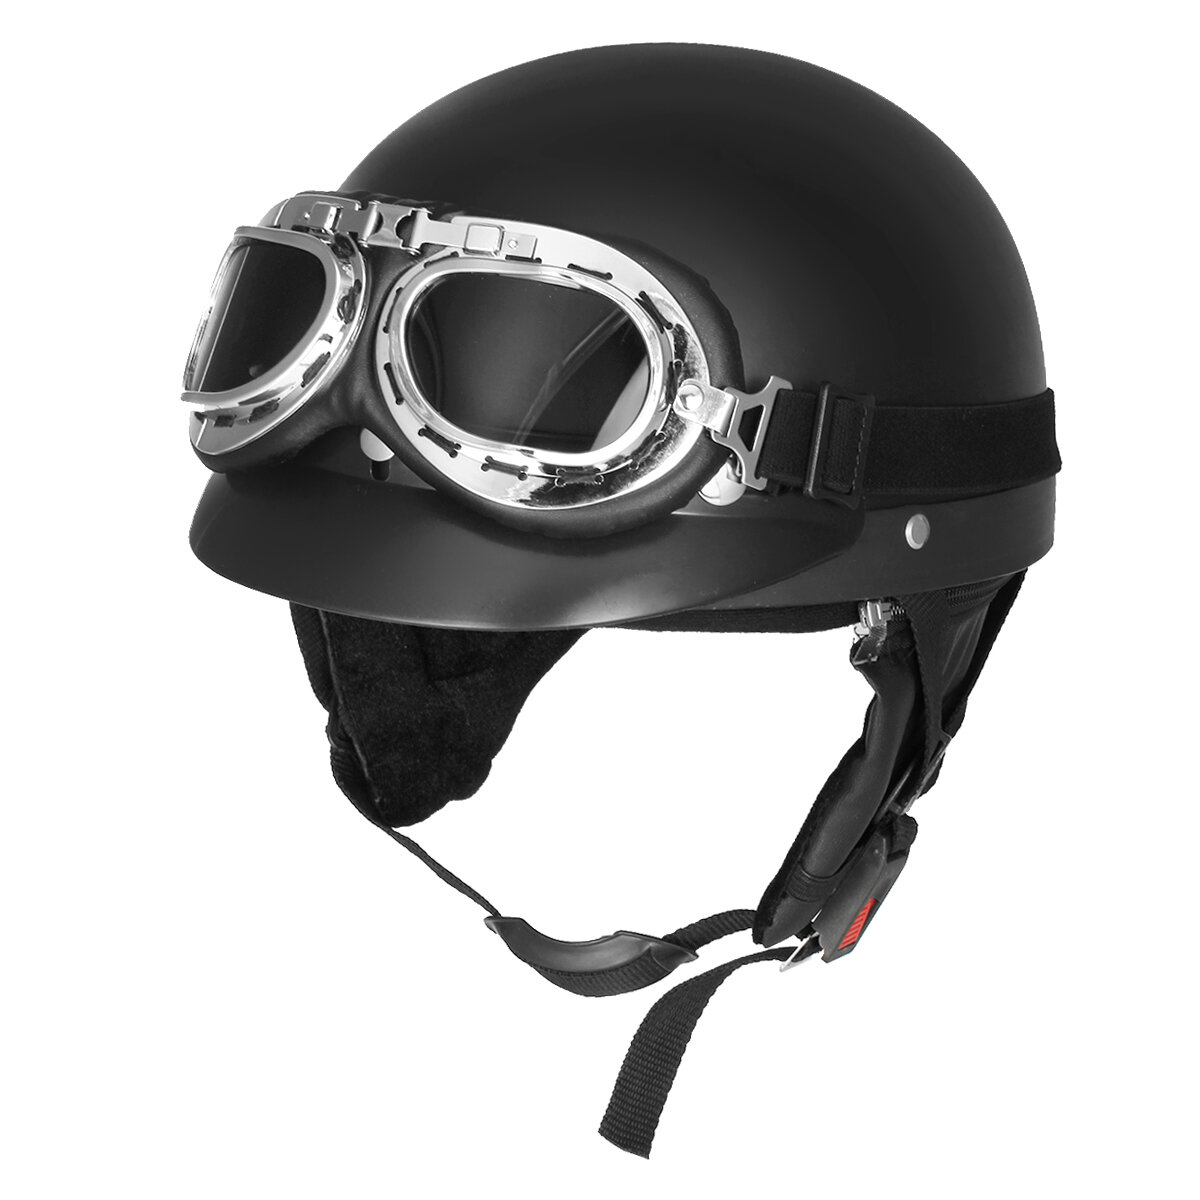 71318793 Retro Matt Black Motorcycle Half Face Helmet Biker Scooter With Sun Visor  UV Goggles Cafe Racer